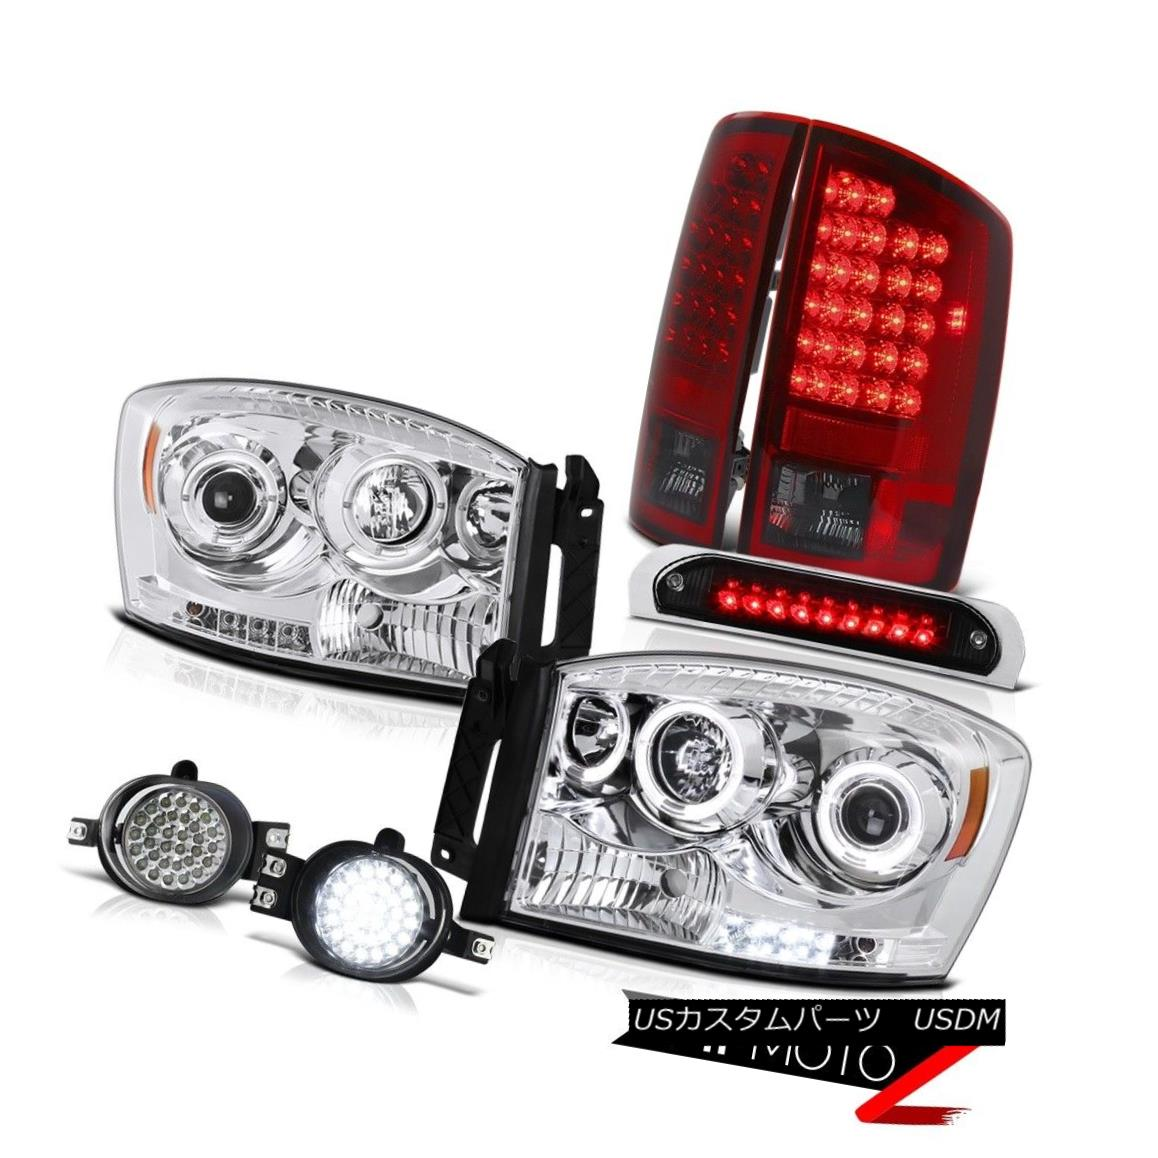 テールライト 2006 Ram 2500 LED Daytime Headlights Red Smoke Tail Lights DRL Fog Kit Black 3rd 2006 Ram 2500 LED昼間ヘッドライト赤煙テールライトDRL Fog Kit Black 3rd